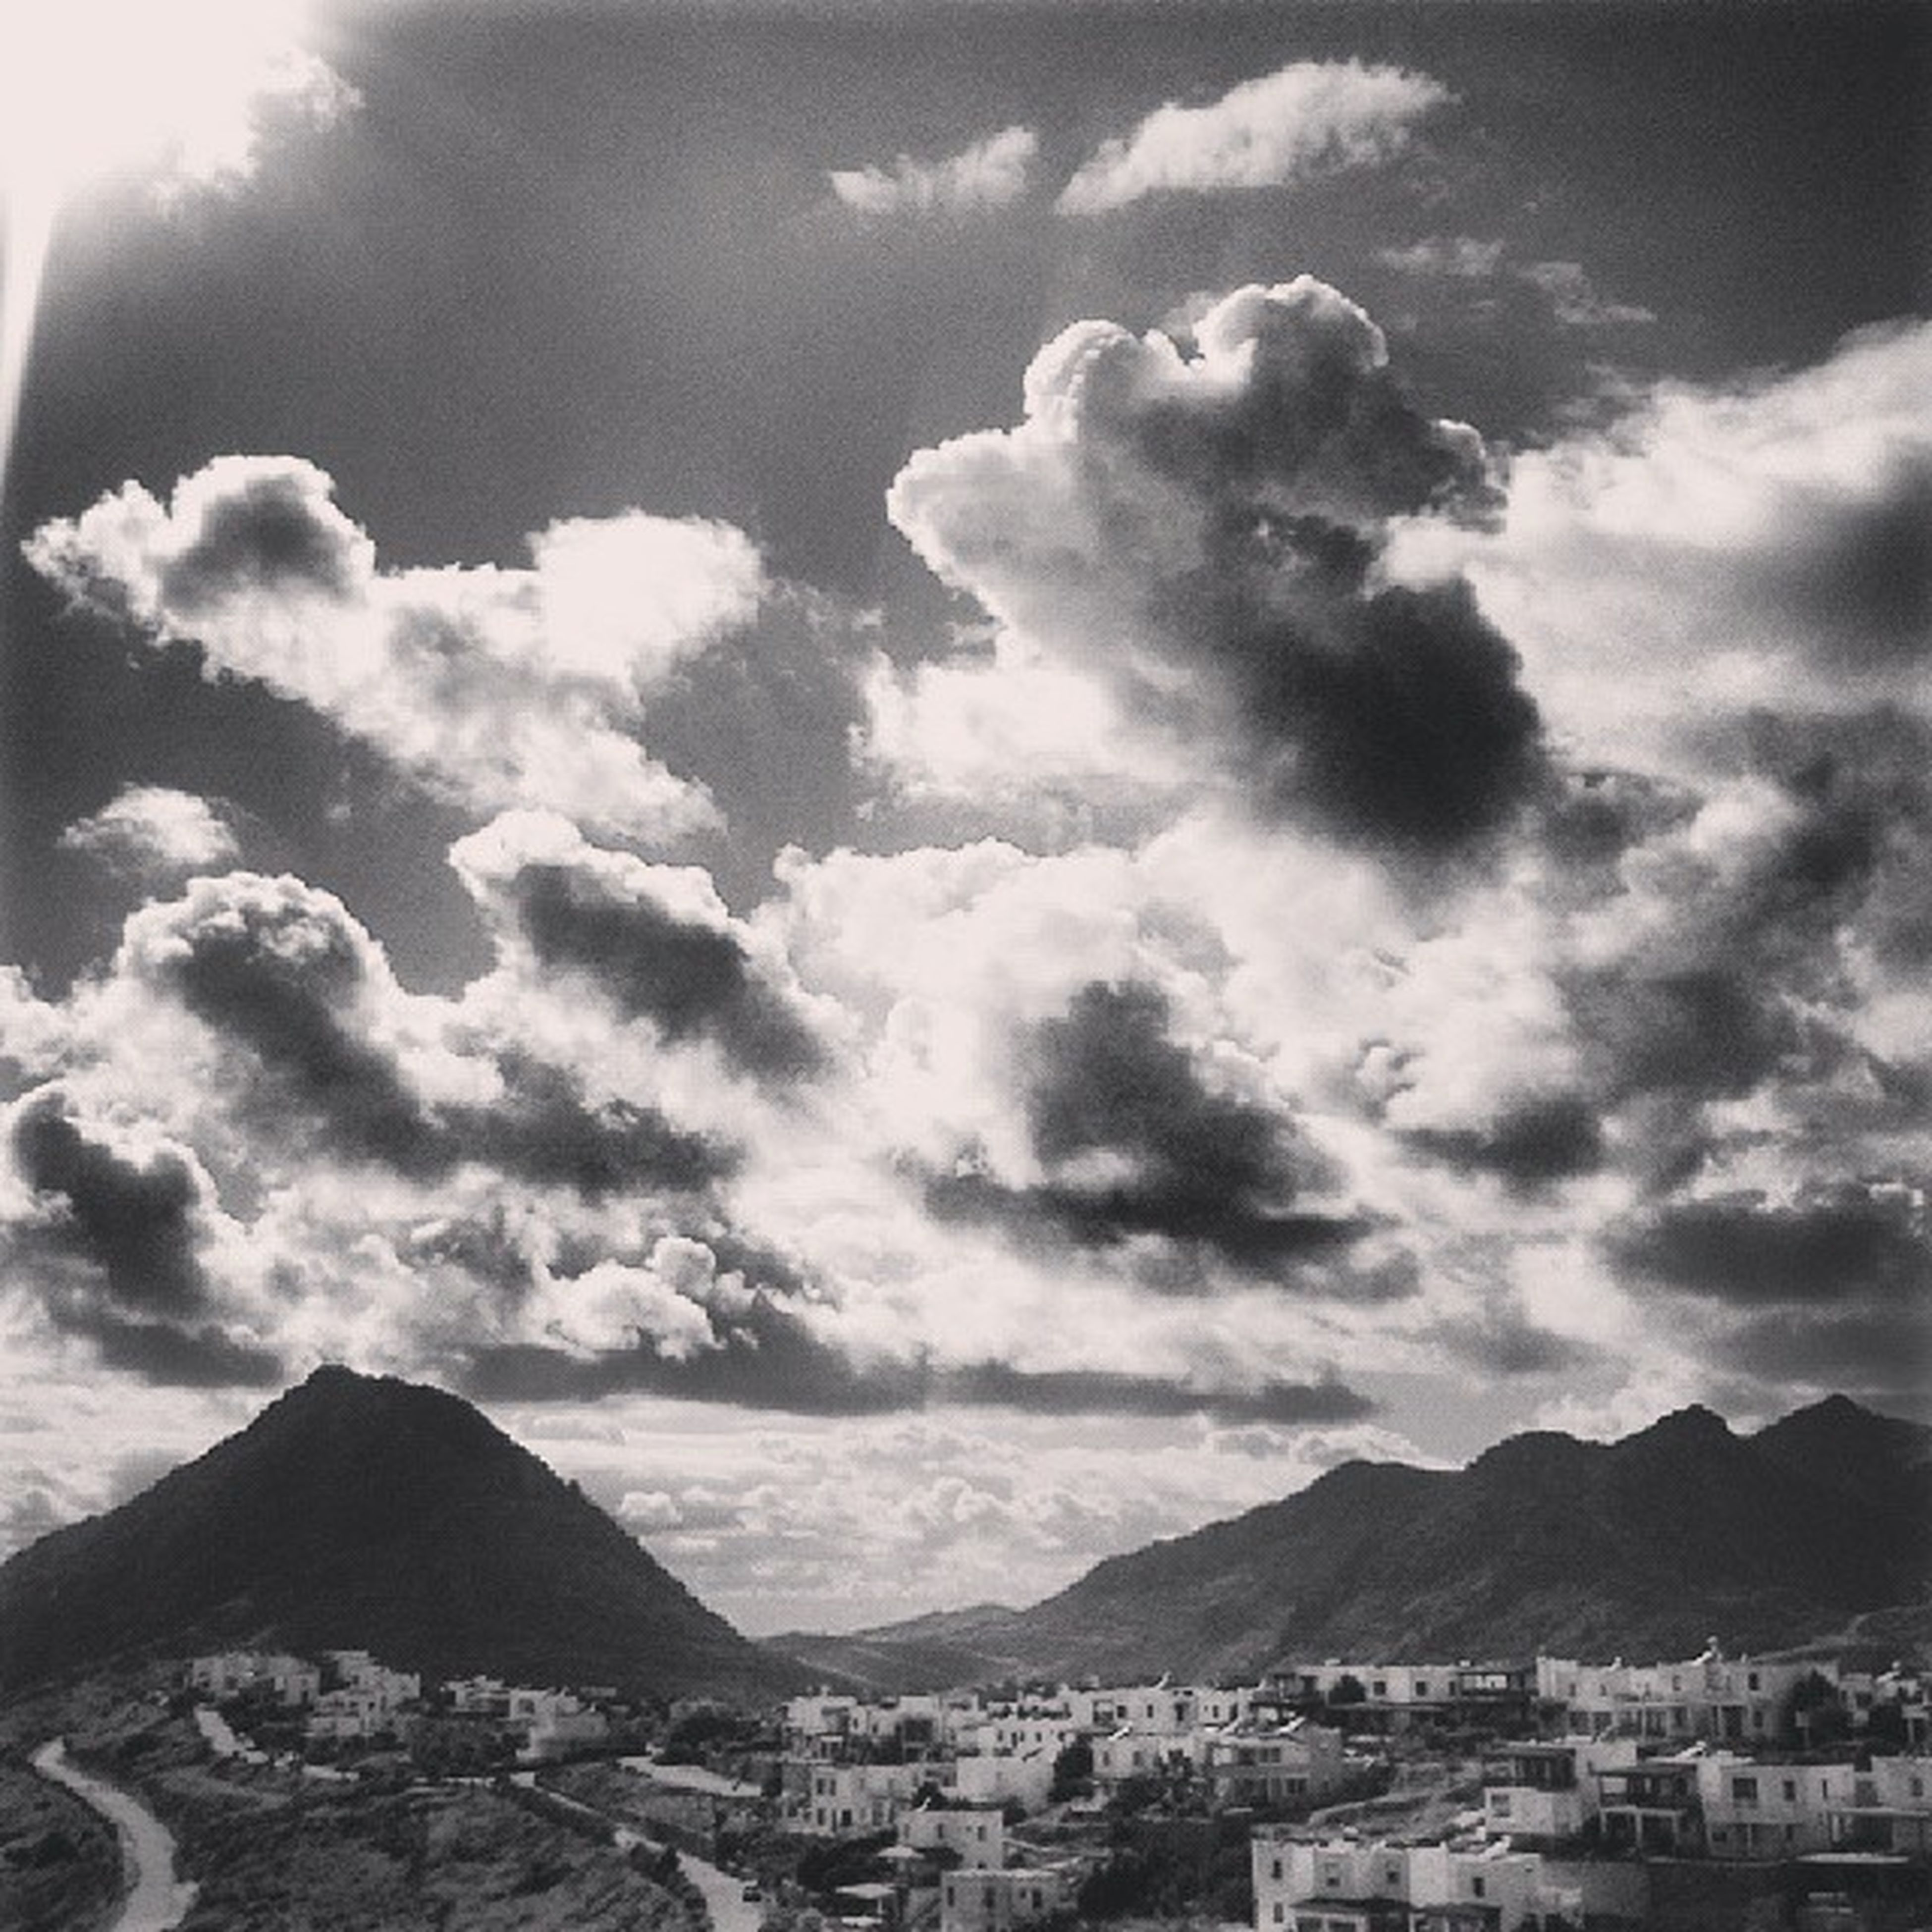 mountain, sky, building exterior, mountain range, architecture, cloud - sky, built structure, cloudy, cloud, scenics, town, house, beauty in nature, nature, residential structure, city, residential building, cityscape, residential district, townscape